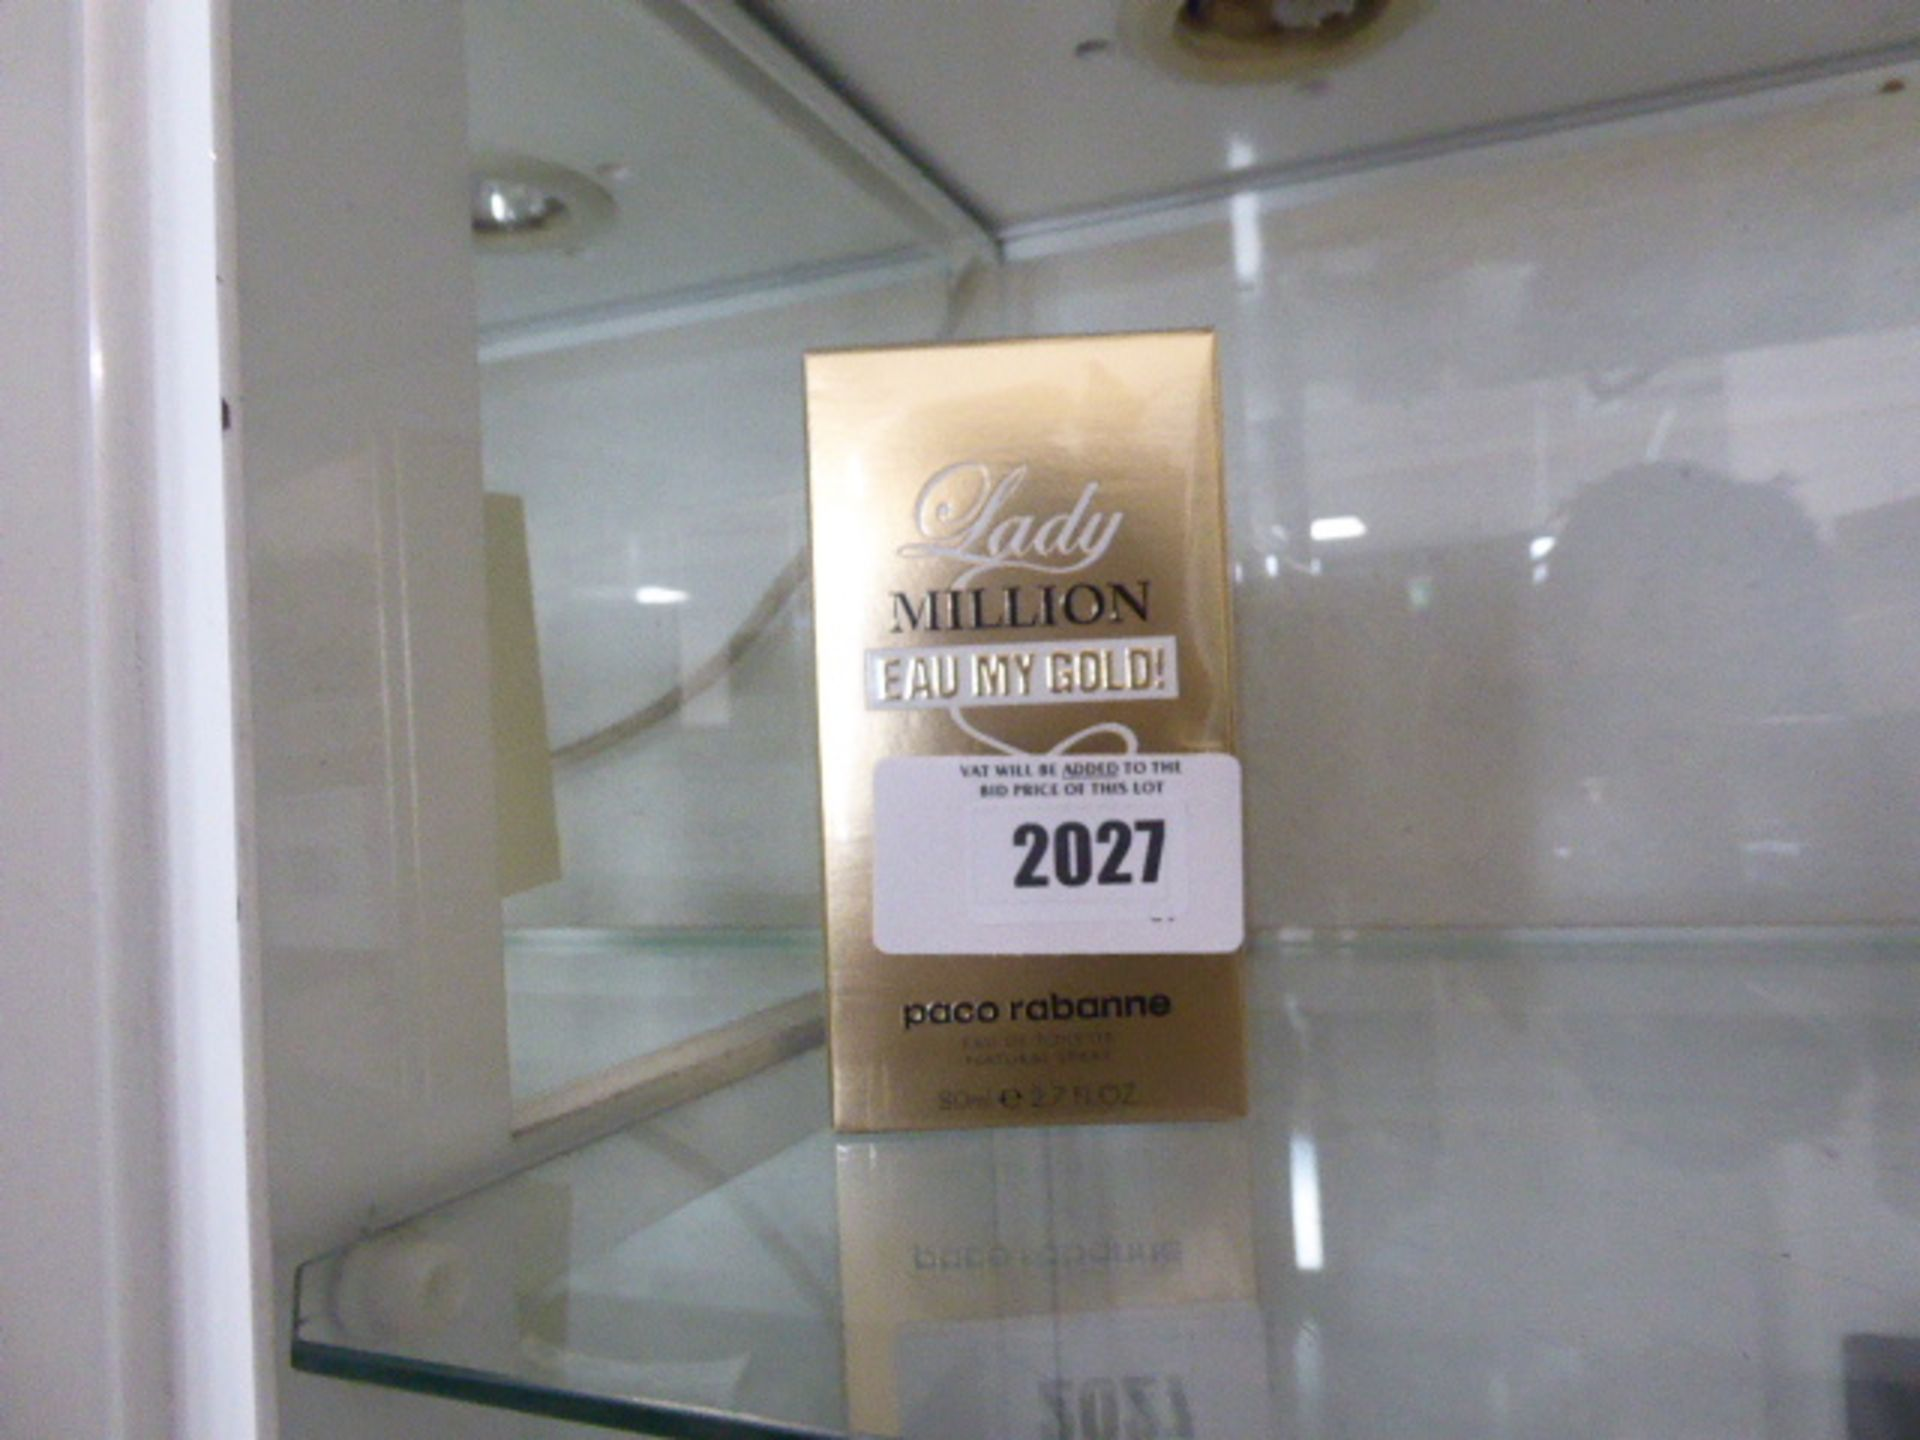 Lot 2027 - Lady Million by Paco Rabanne, 80ml perfume in sealed box